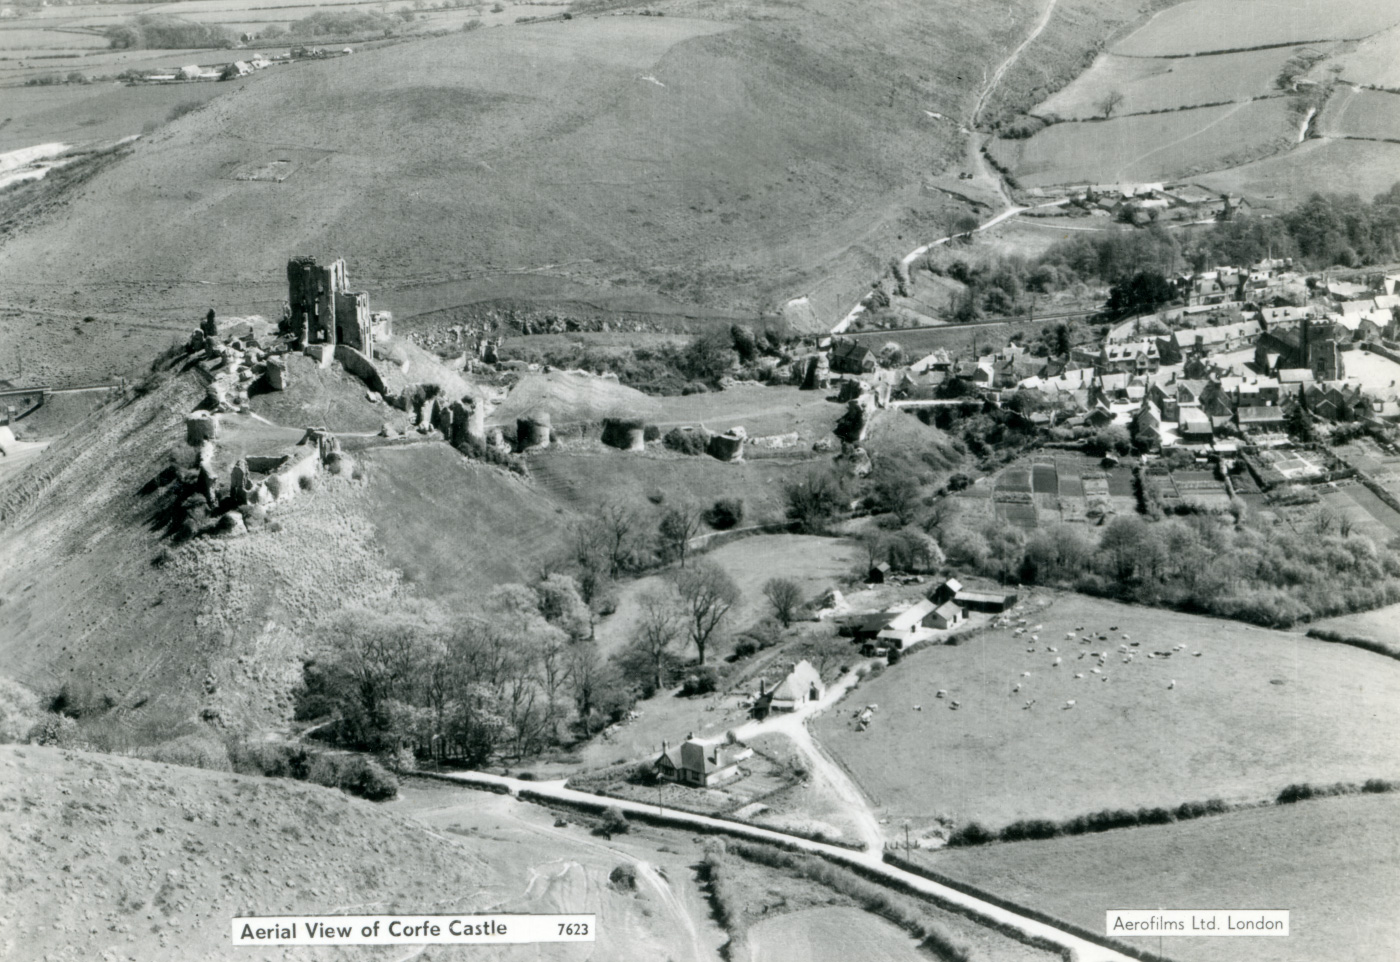 Corfe Castle from above